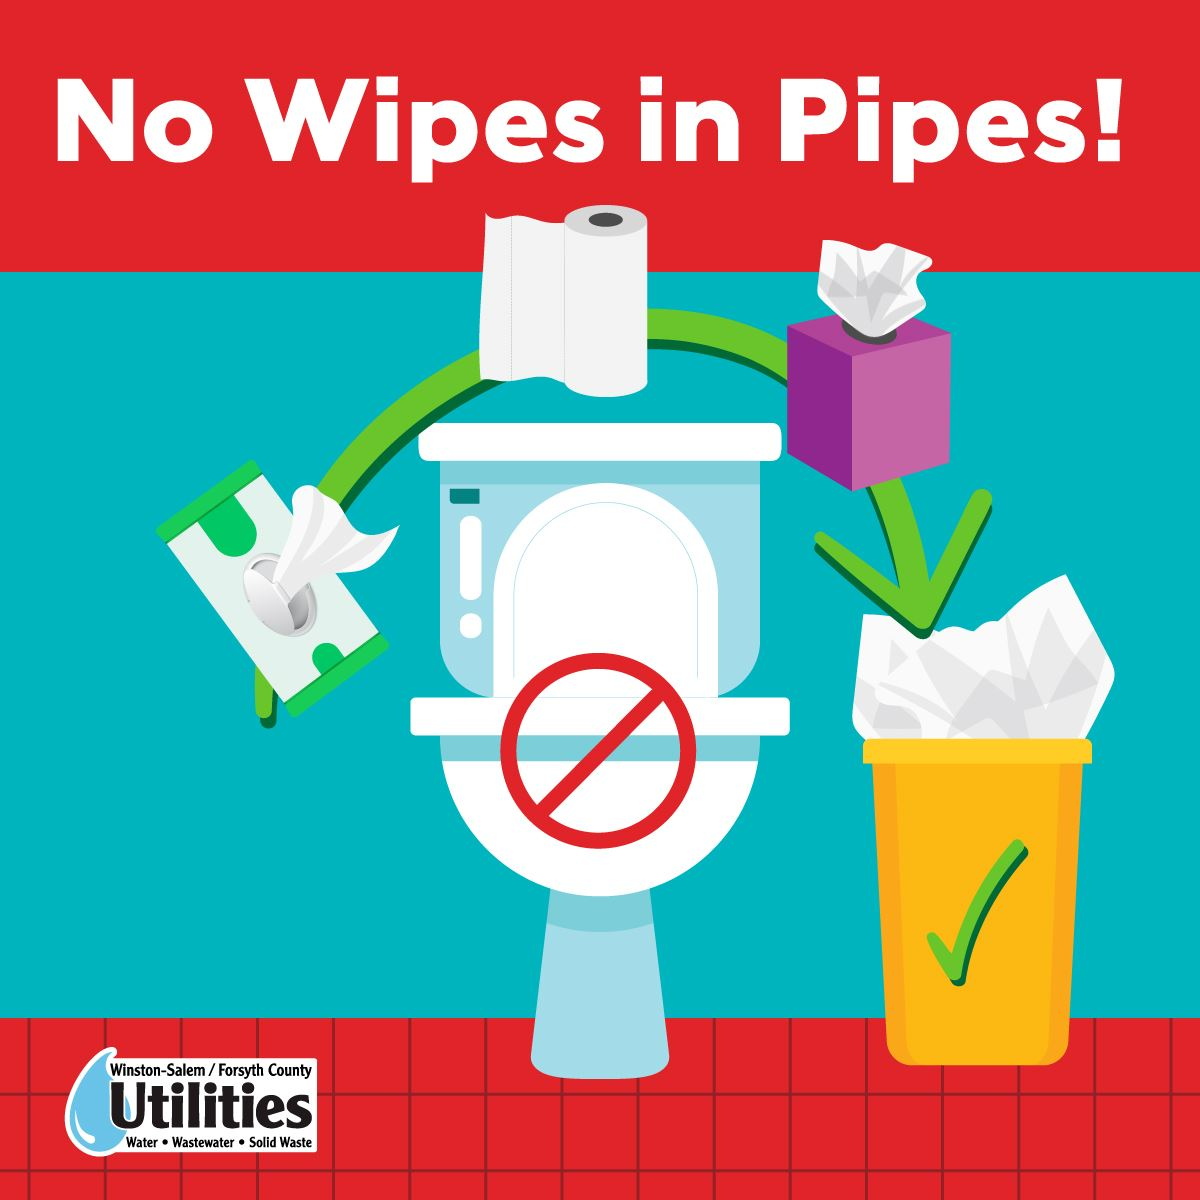 No Wipes in Pipes